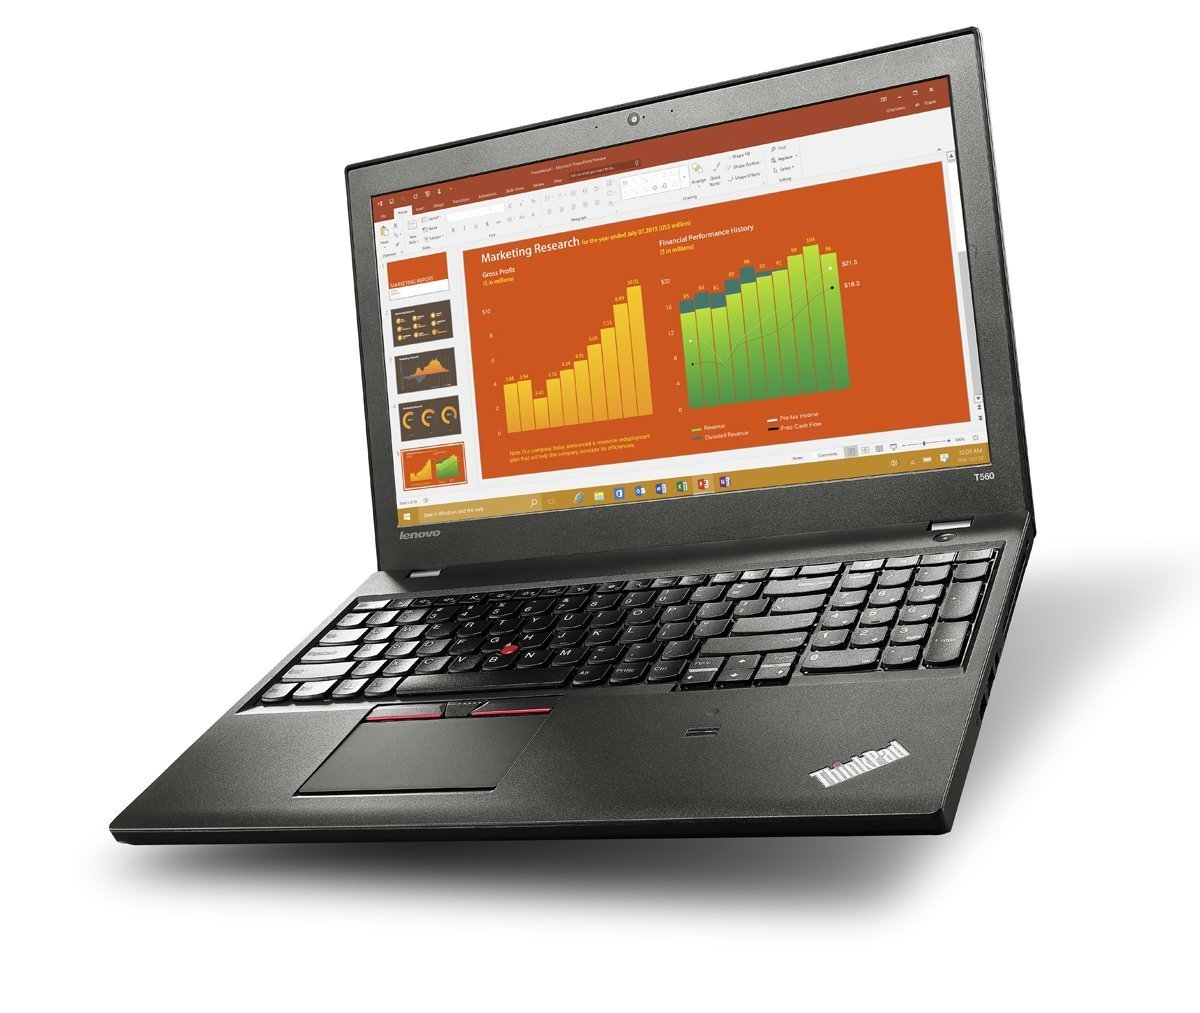 Lenovo Thinkpad Business-Ready Laptop T560 FHD (15.6'', i5-6200U 2.3GHz, 8GB RAM, 500GB 7200rpm, Backlit Keyboard, Webcam, Fingerprint Reader, Windows 7 Pro Downgradeable Windows 10 Pro) by Lenovo (Image #2)